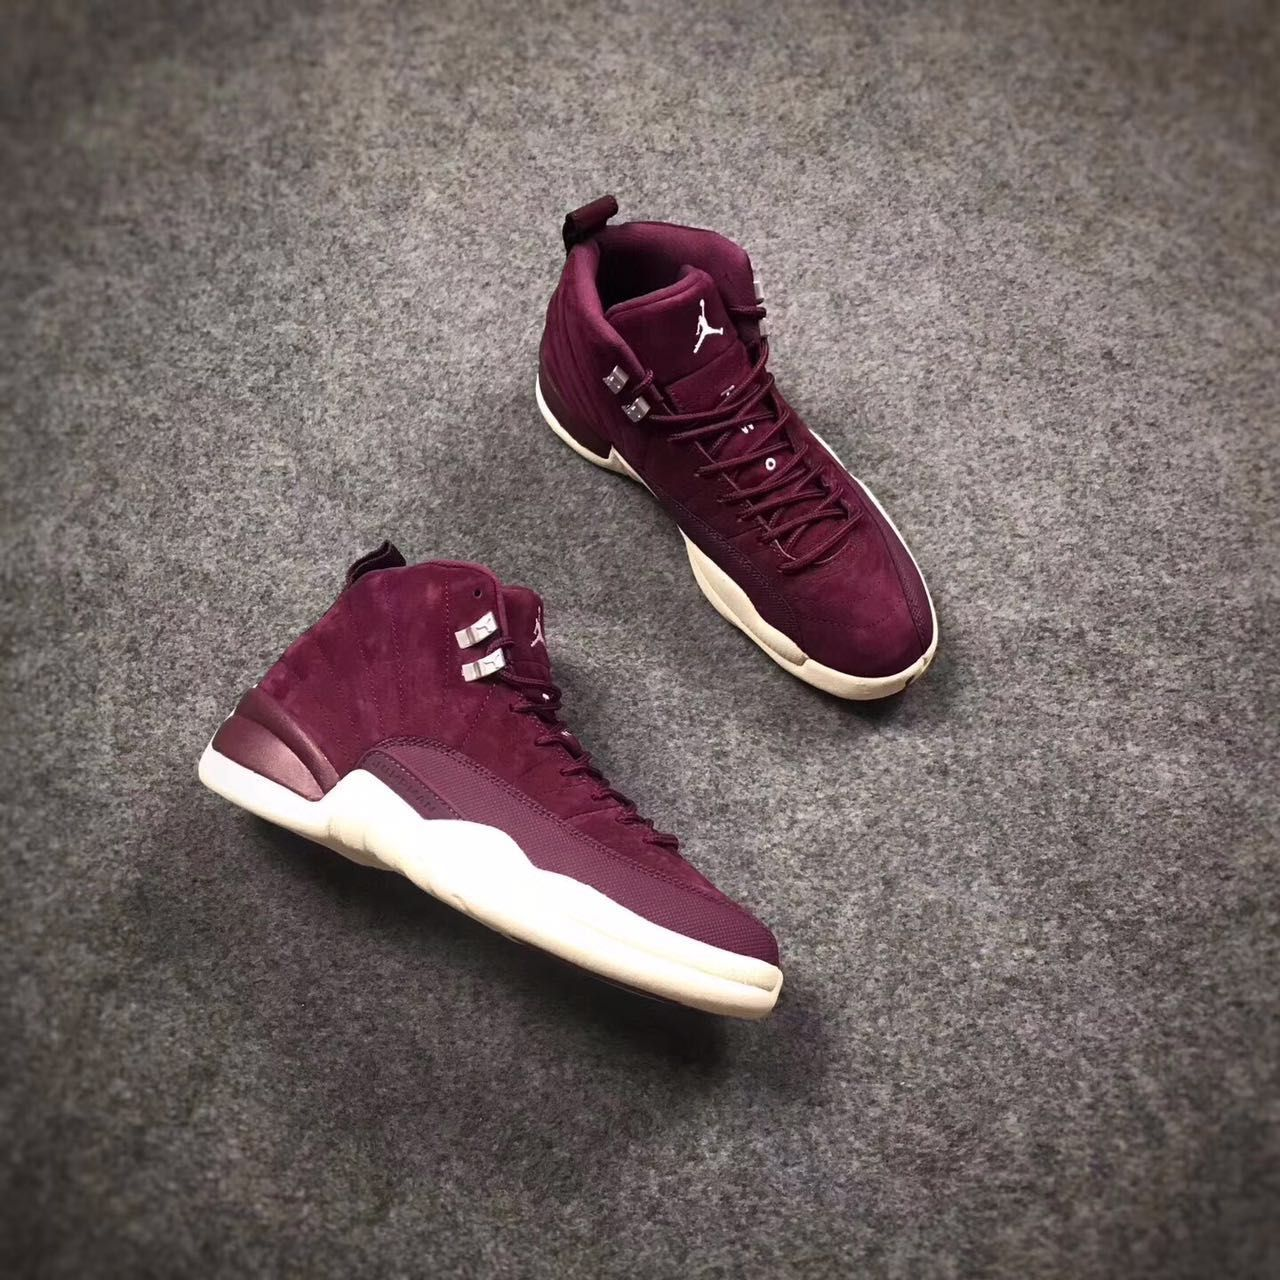 463c047cdb4 Air Jordan 12 Bordeaux Wine Red Shoes | for real | Shoes, Red shoes ...